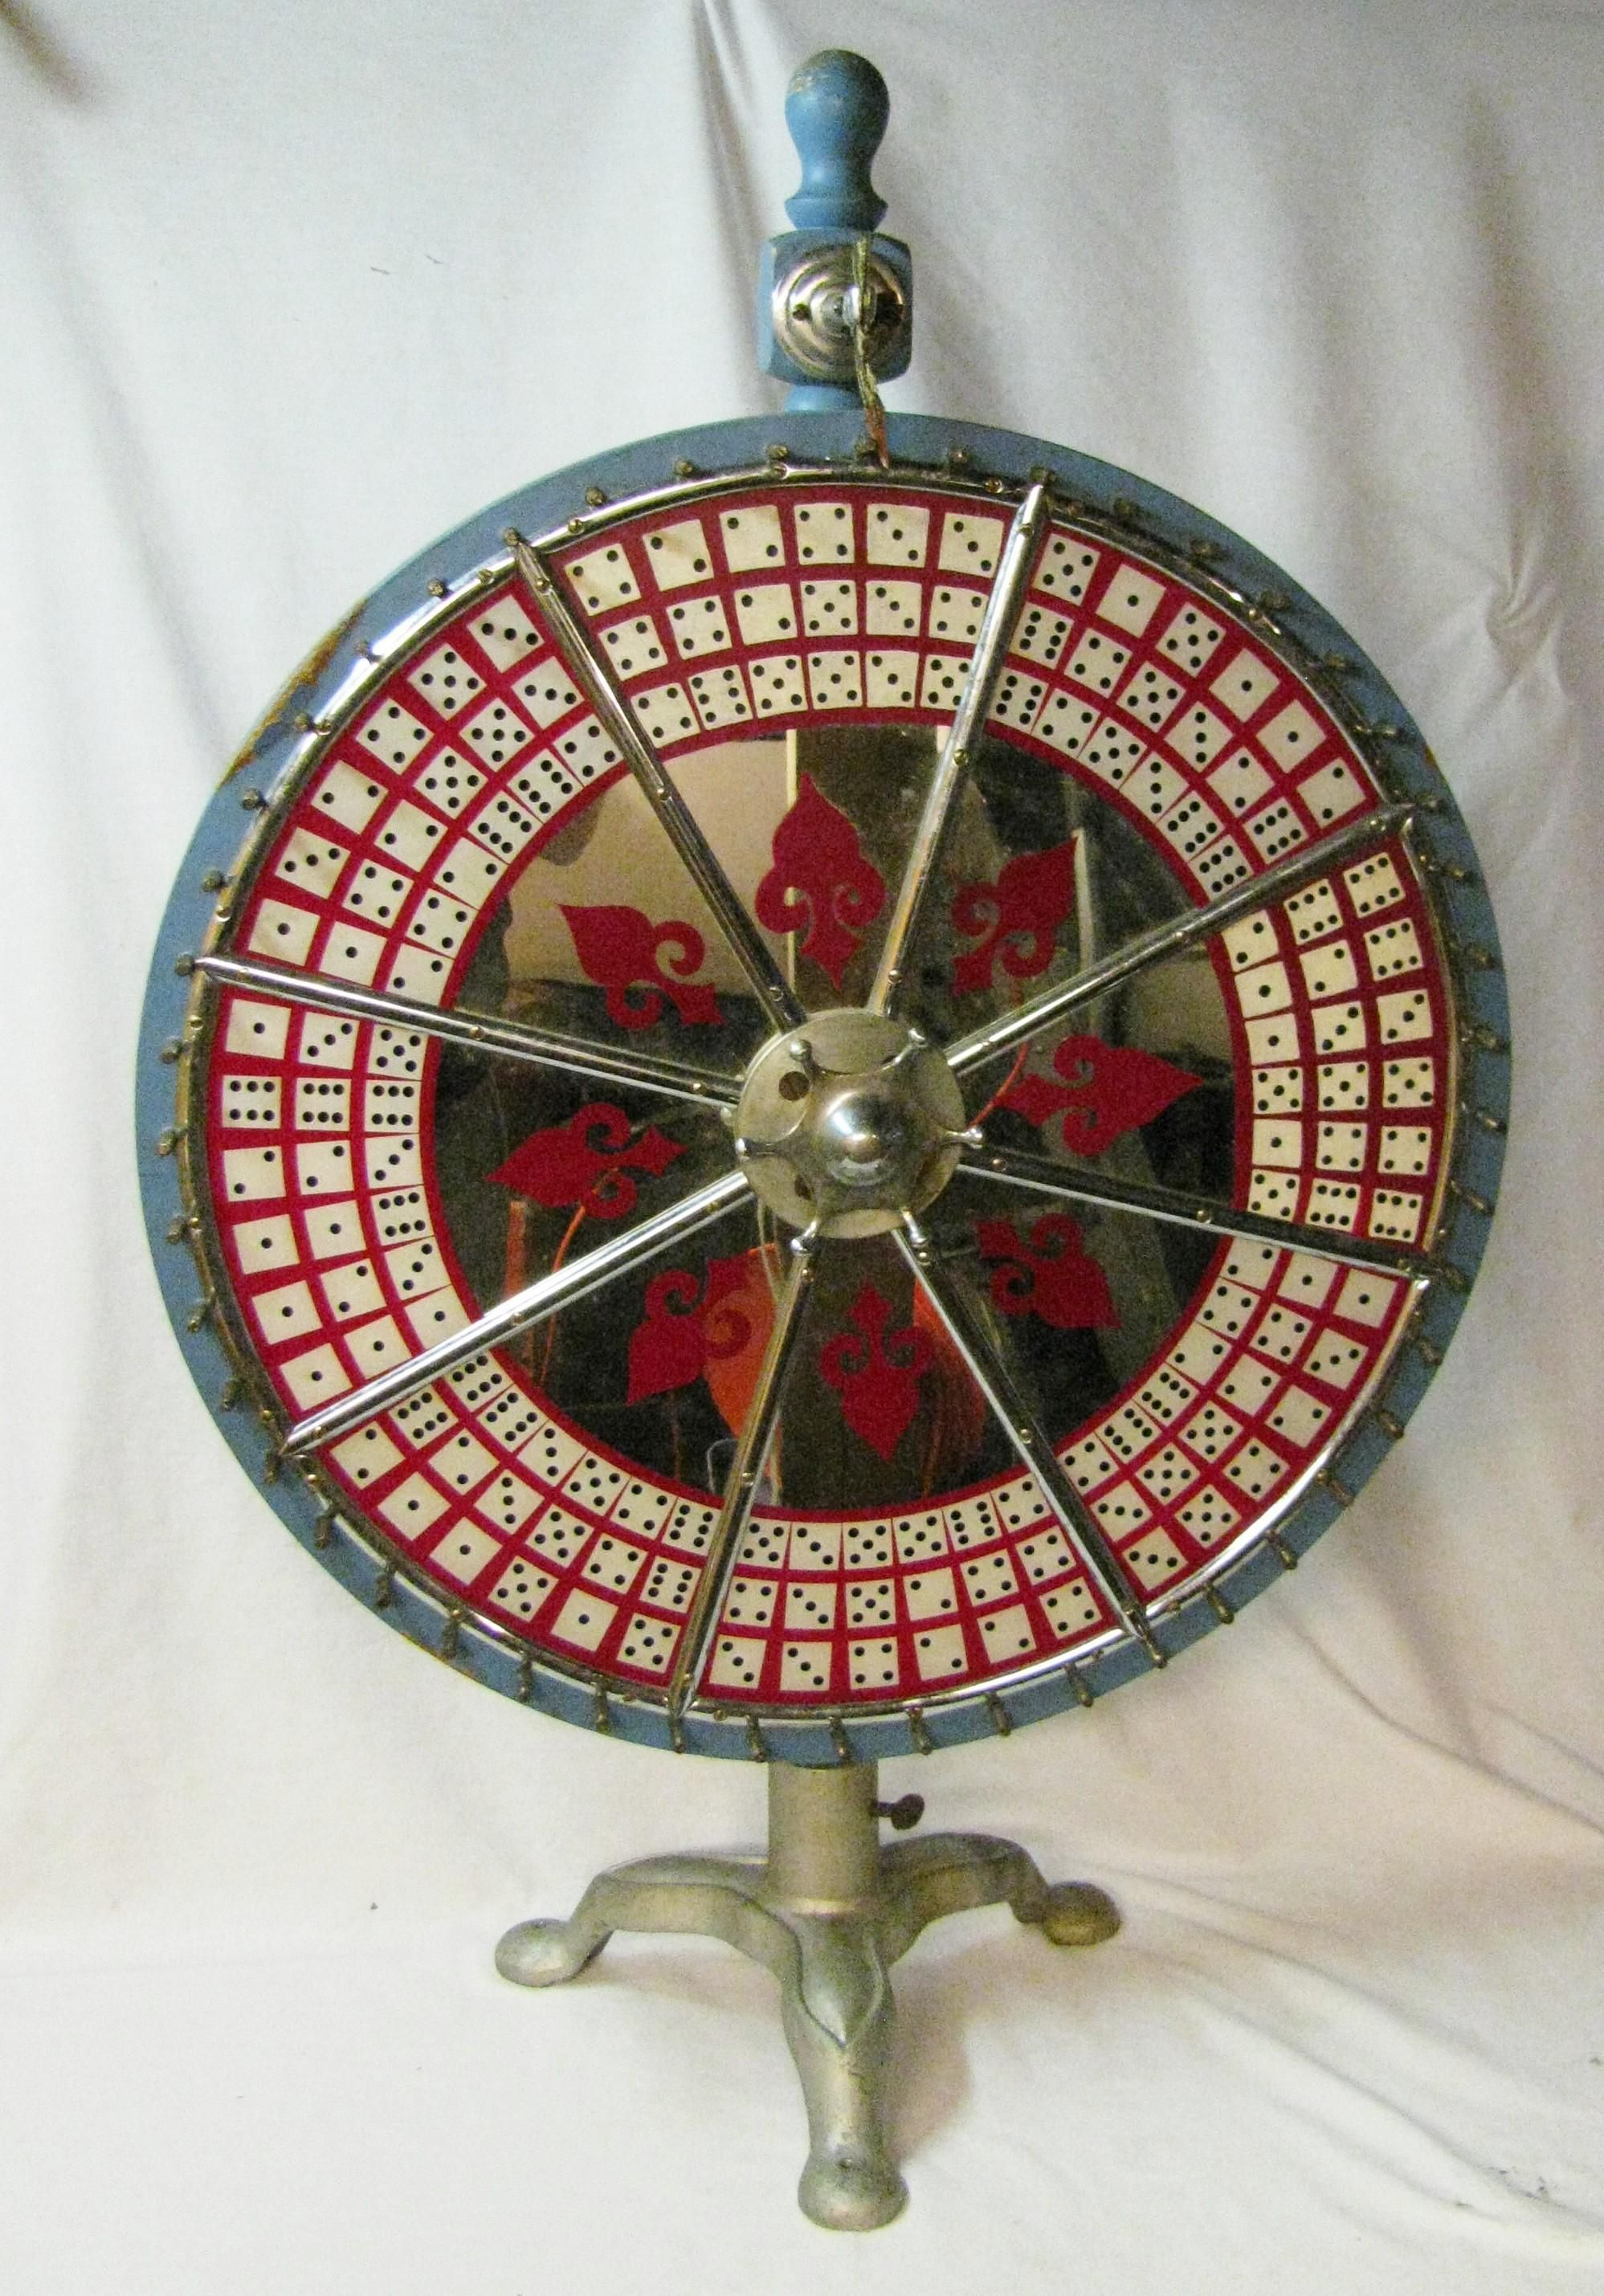 Vintage Dice Carnival Game Wheel Table Top Gambling